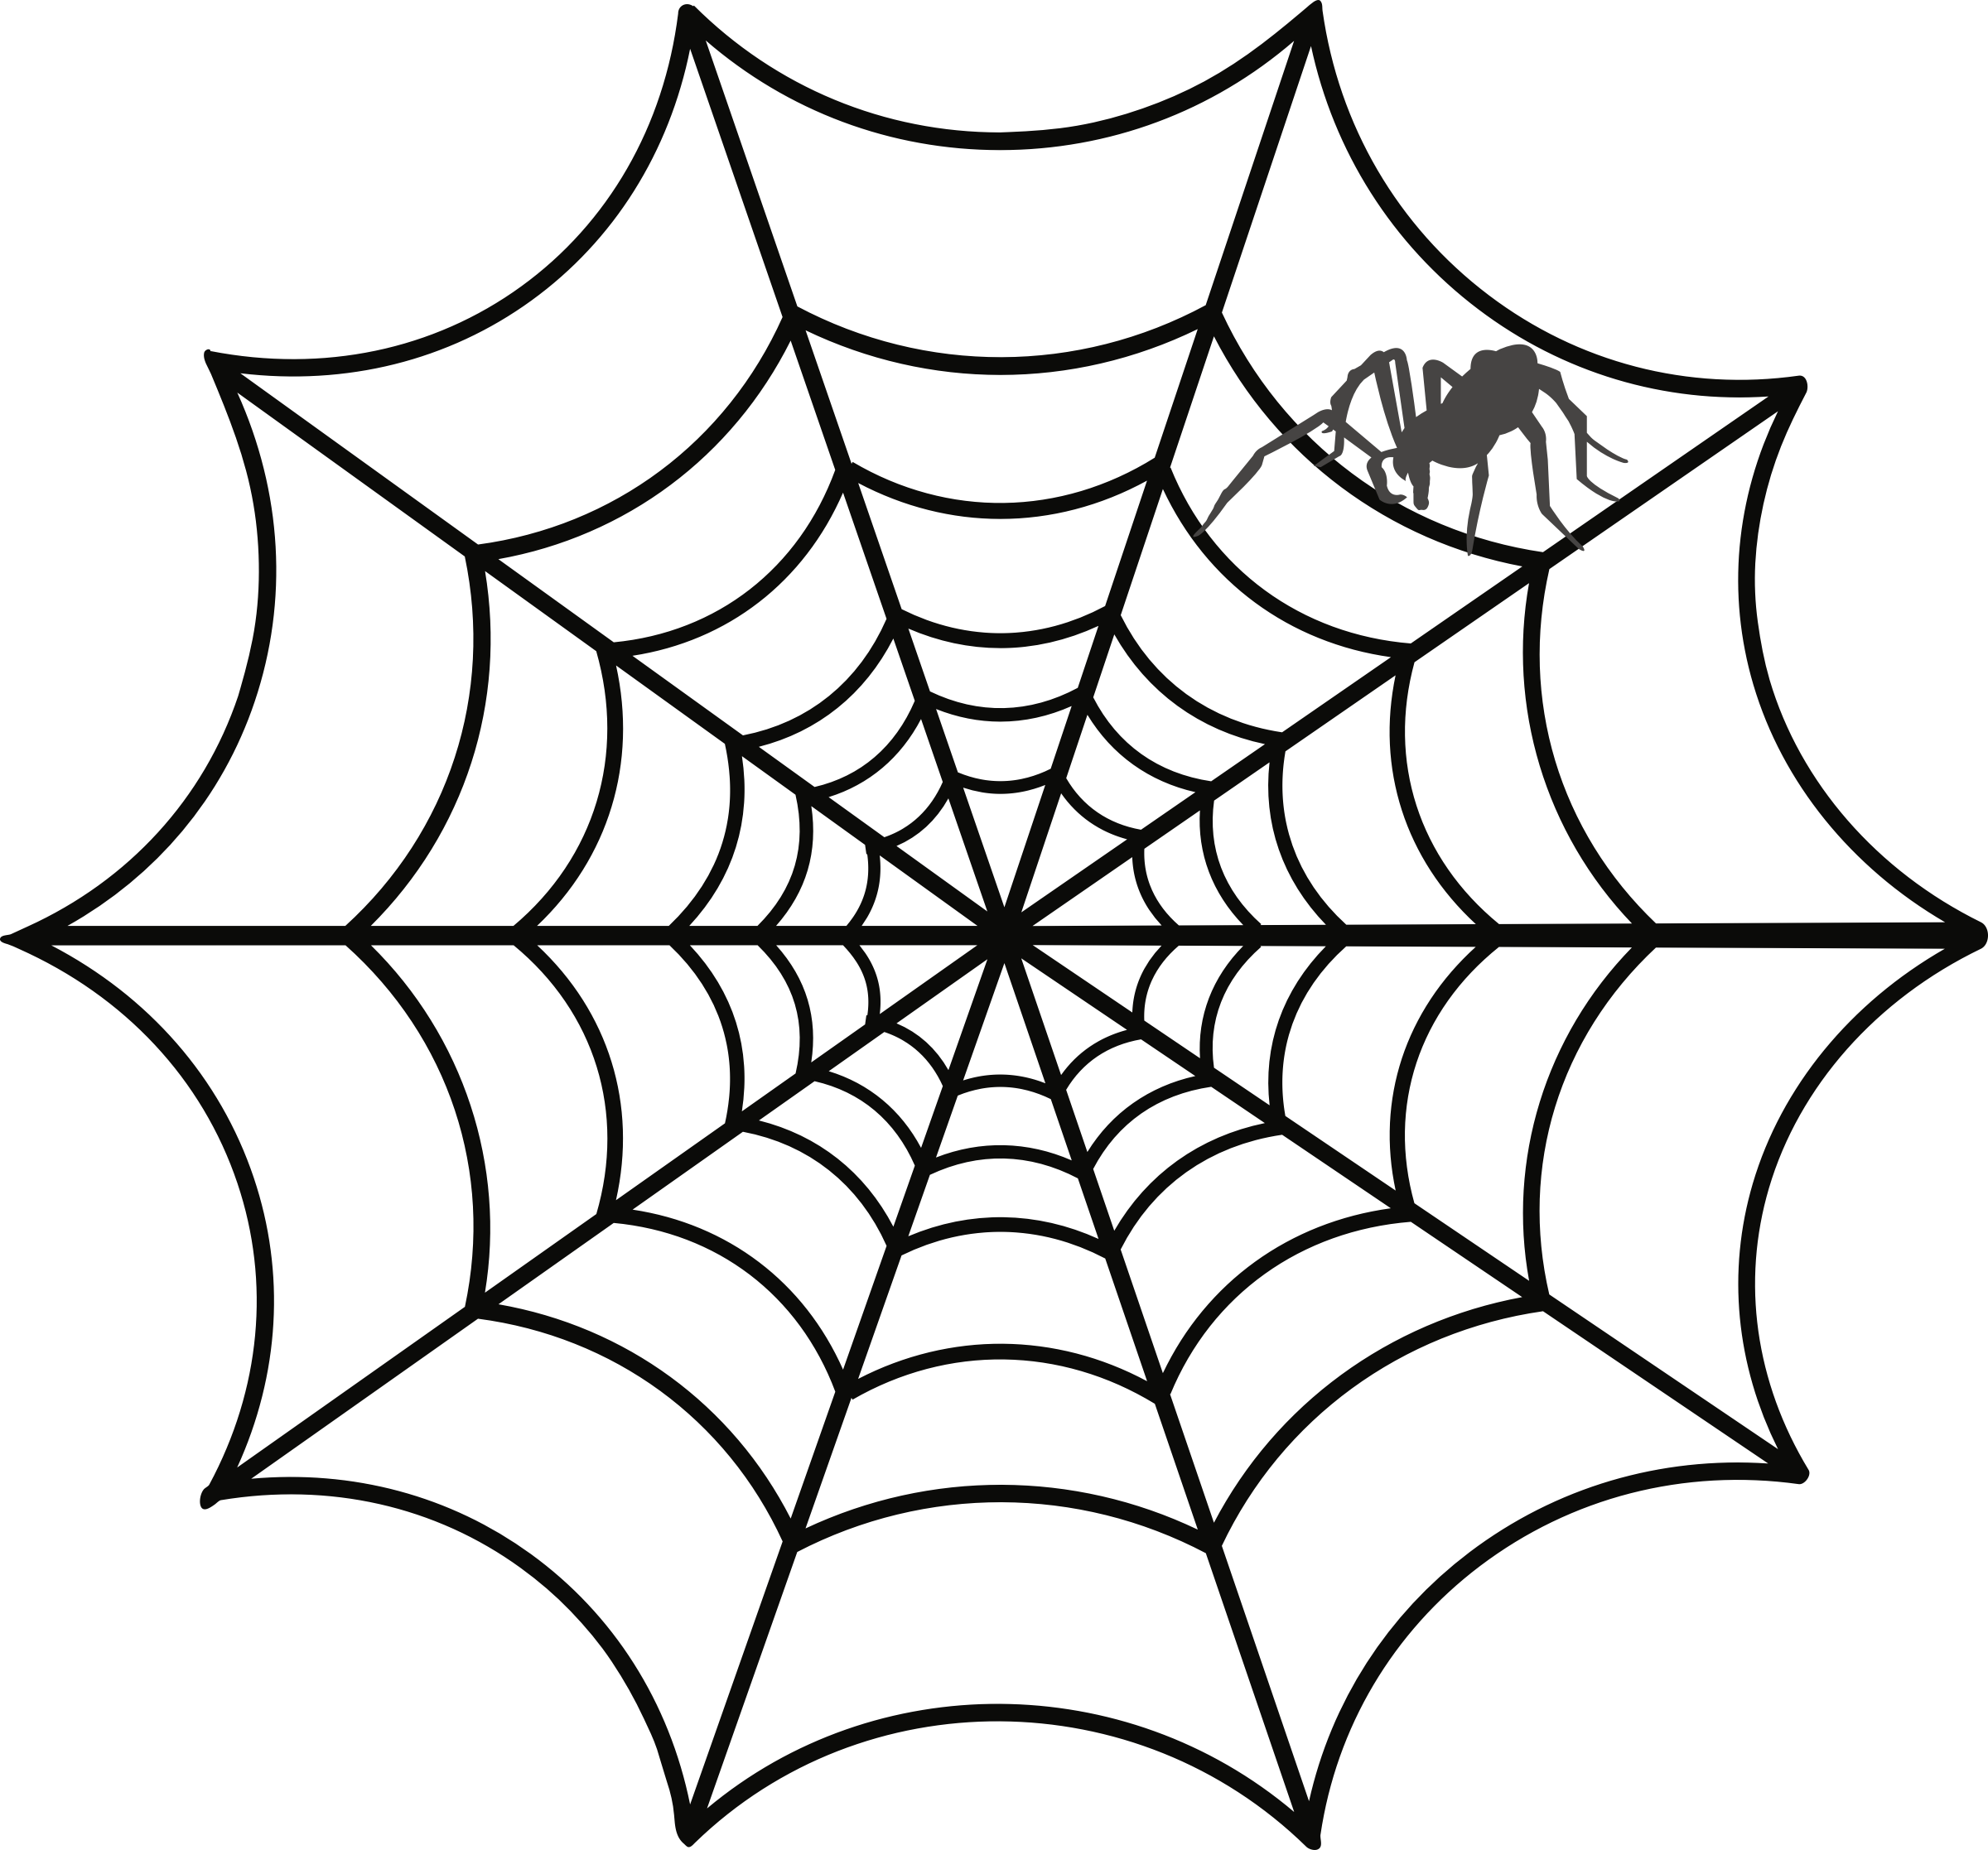 Spider clipart web, Spider web Transparent FREE for download.